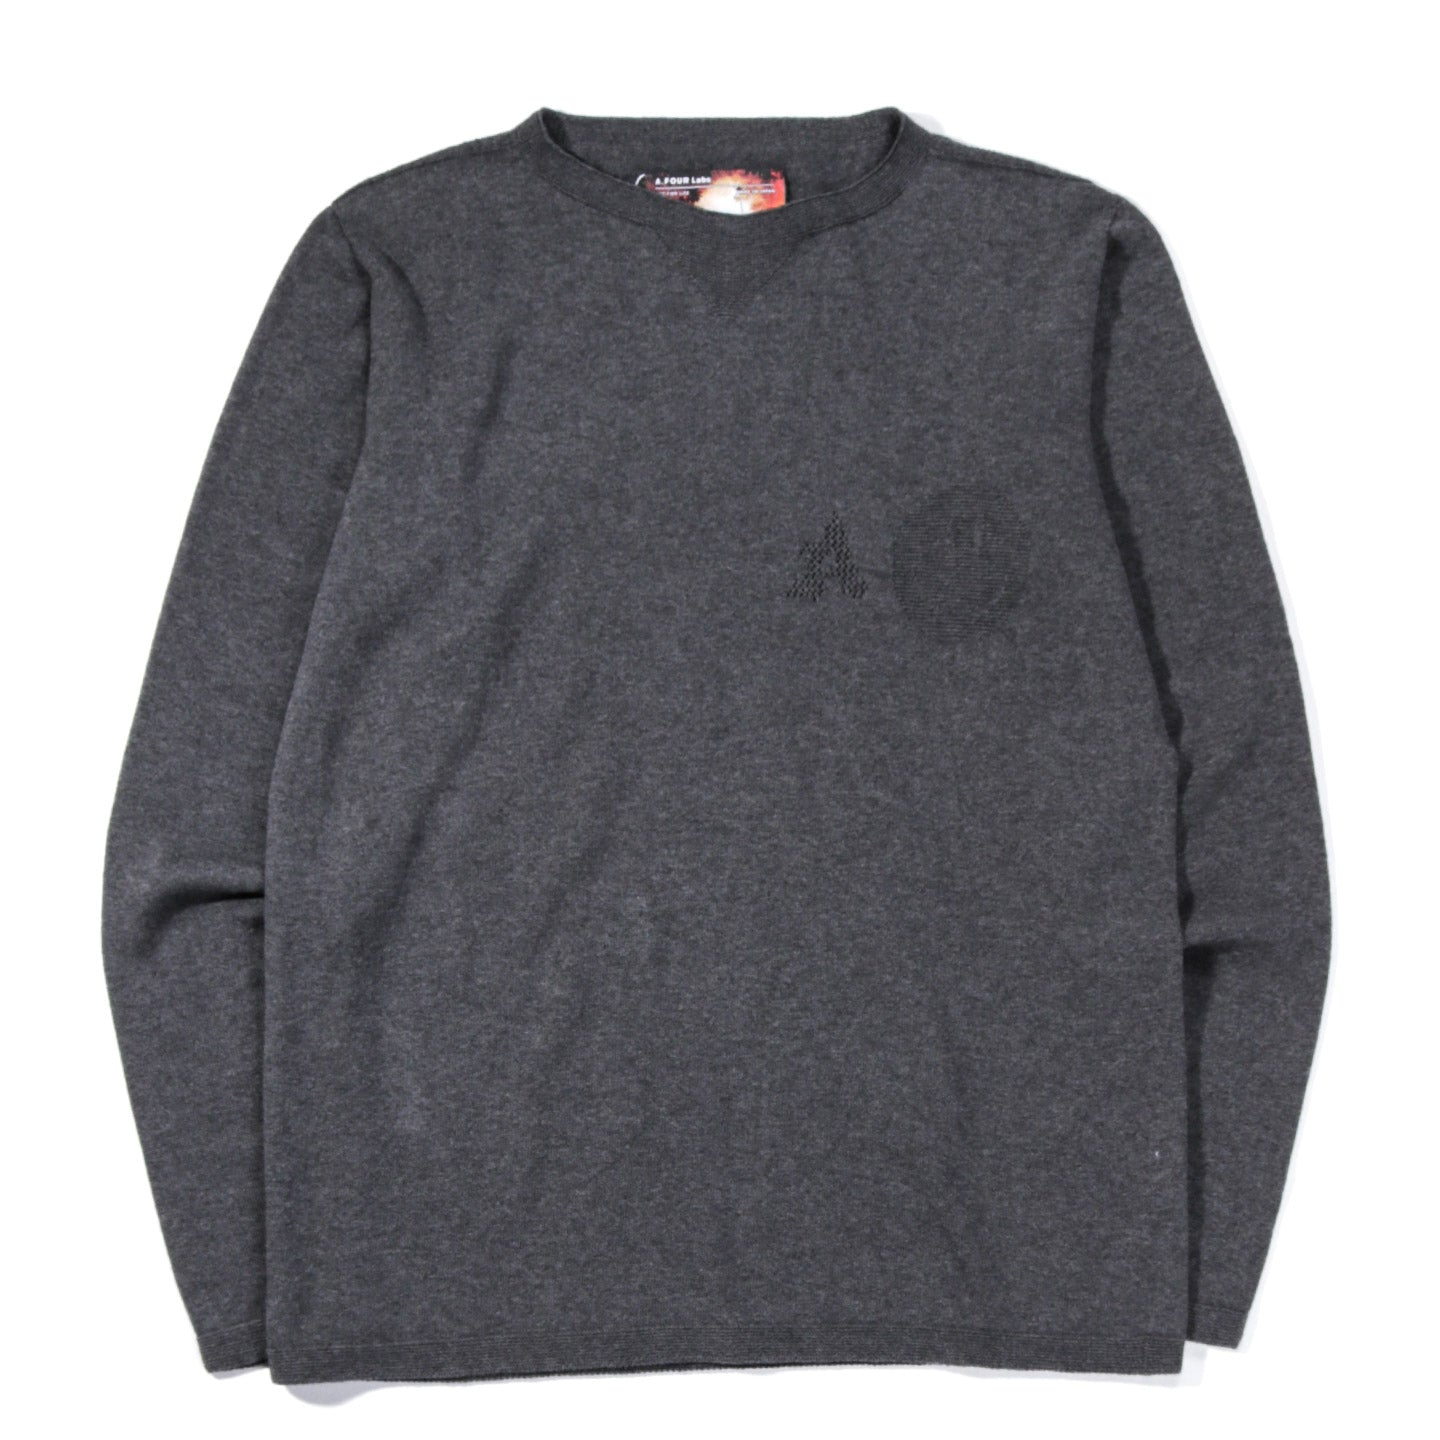 A.FOUR X CALI THORNHILL DEWITT WHOLE GARMENT LS T GREY